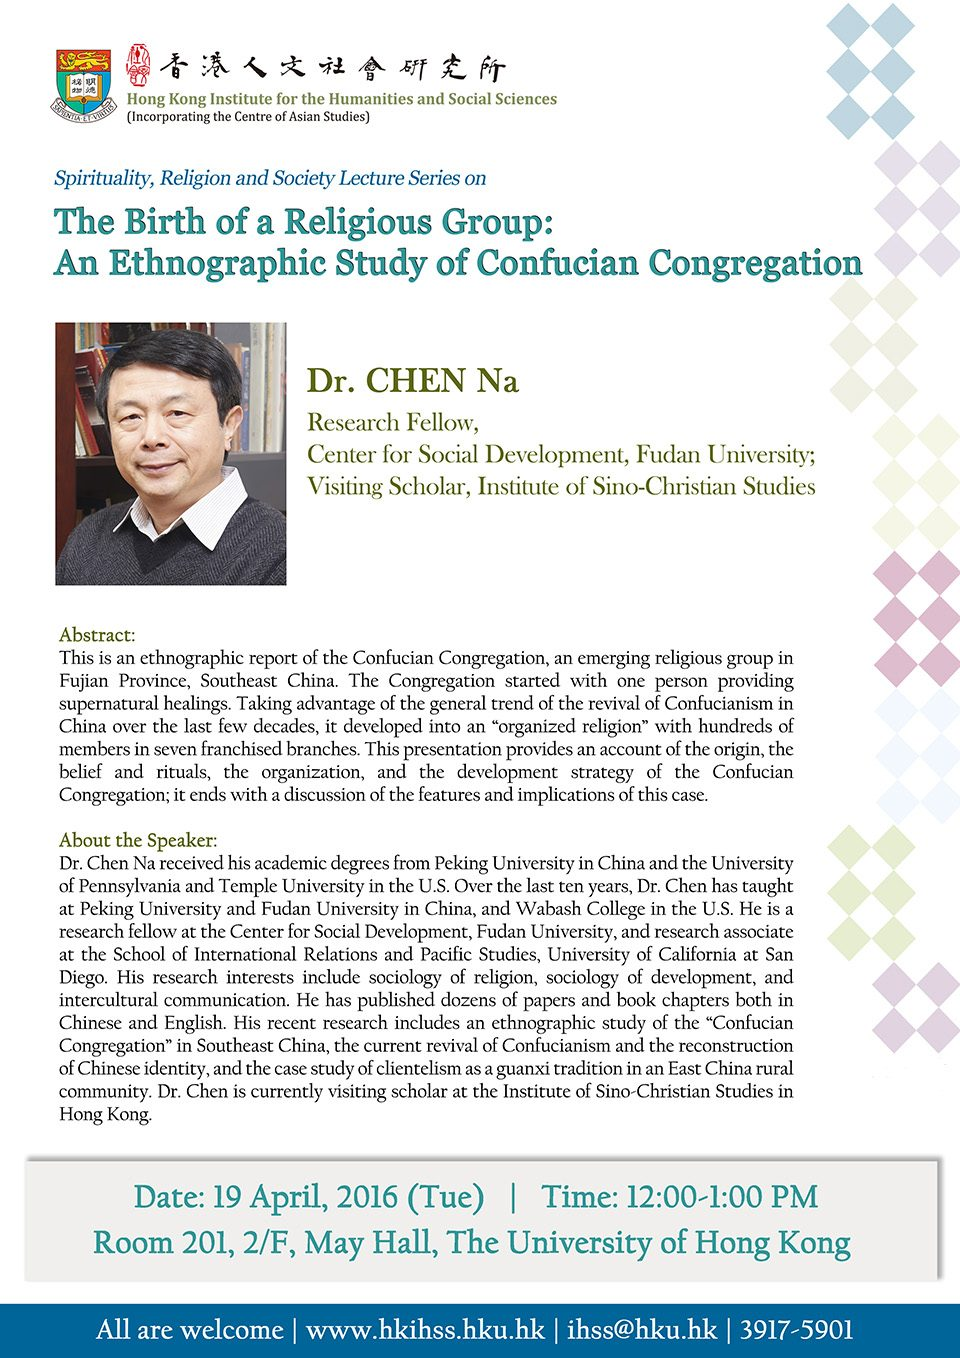 "Spirituality, Religion and Society Lecture Series ""The Birth of a Religious Group: An Ethnographic Study of Confucian Congregation"" by Dr. Na Chen (April 19, 2016)"